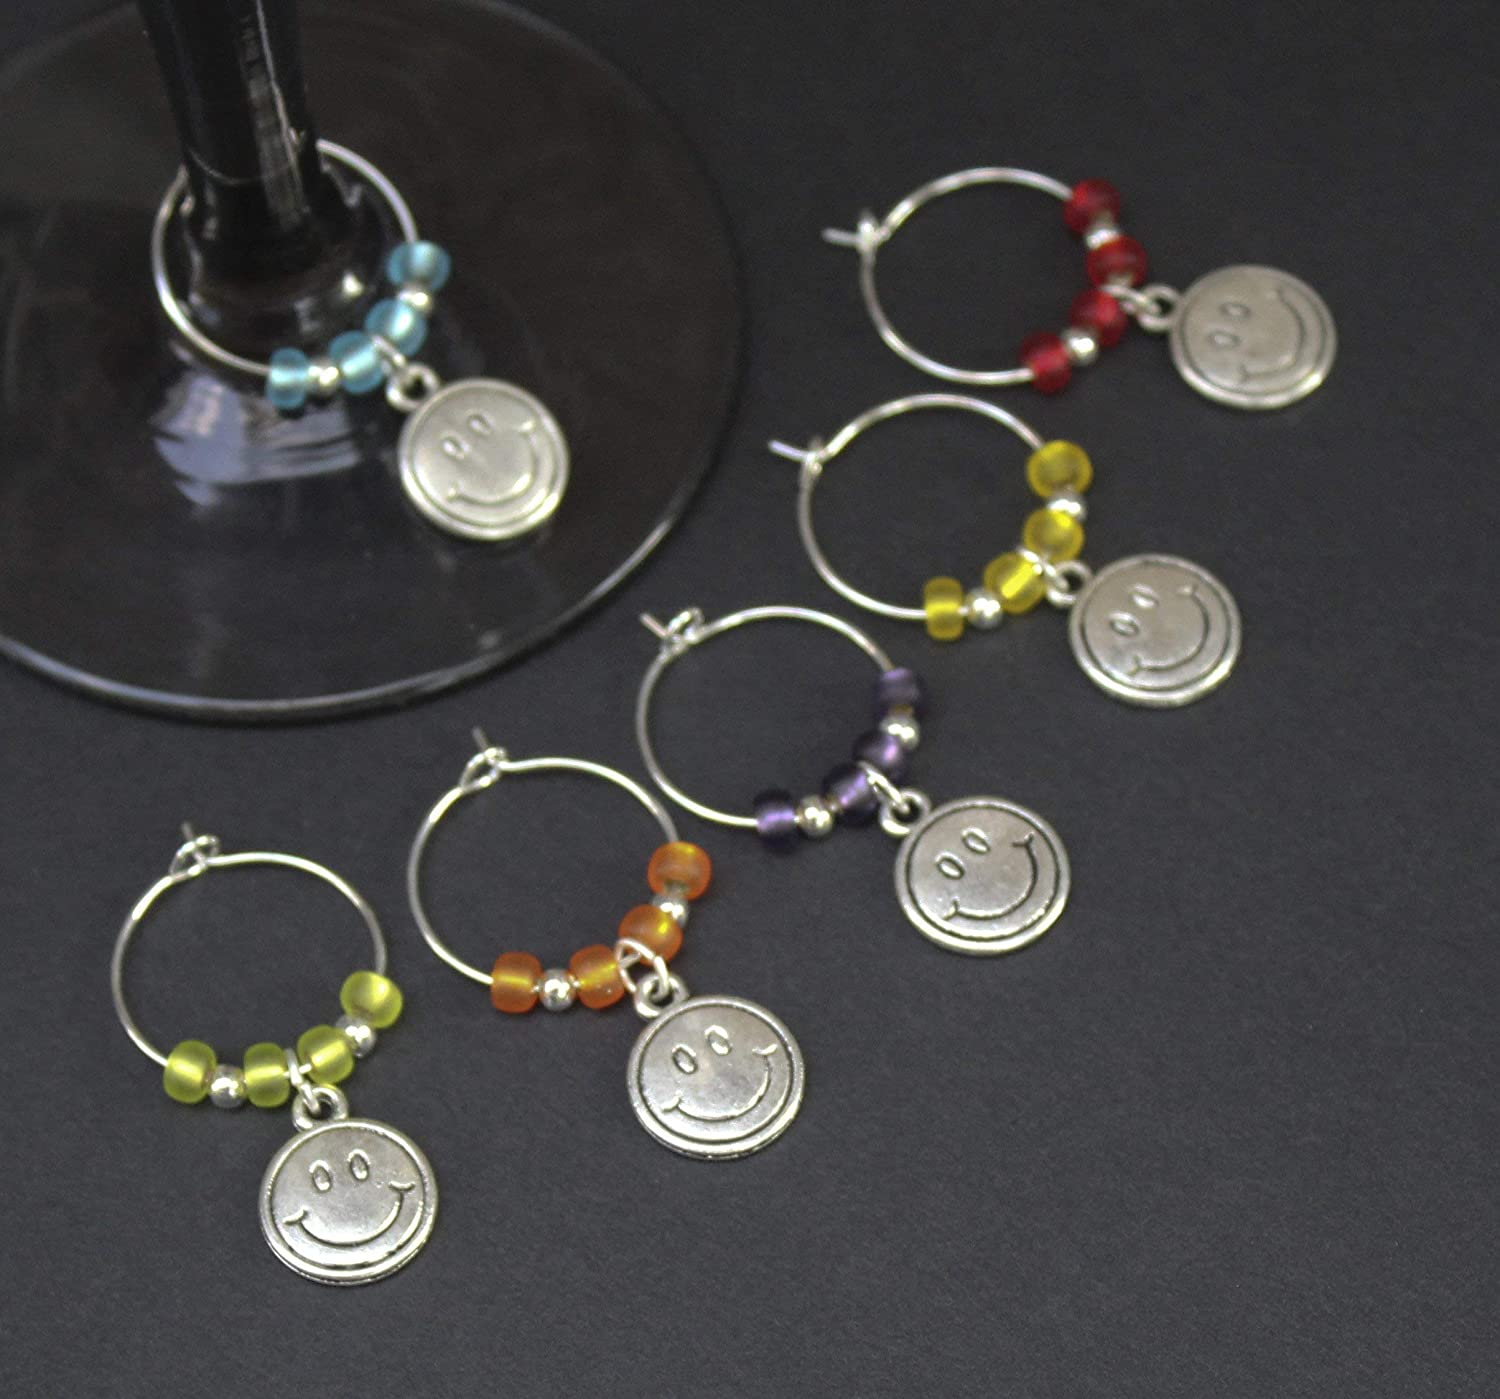 Smiley Face-70S-Baby Boomer-Hippie Wine Glass Charms-Set of 6-SMILEY001-6